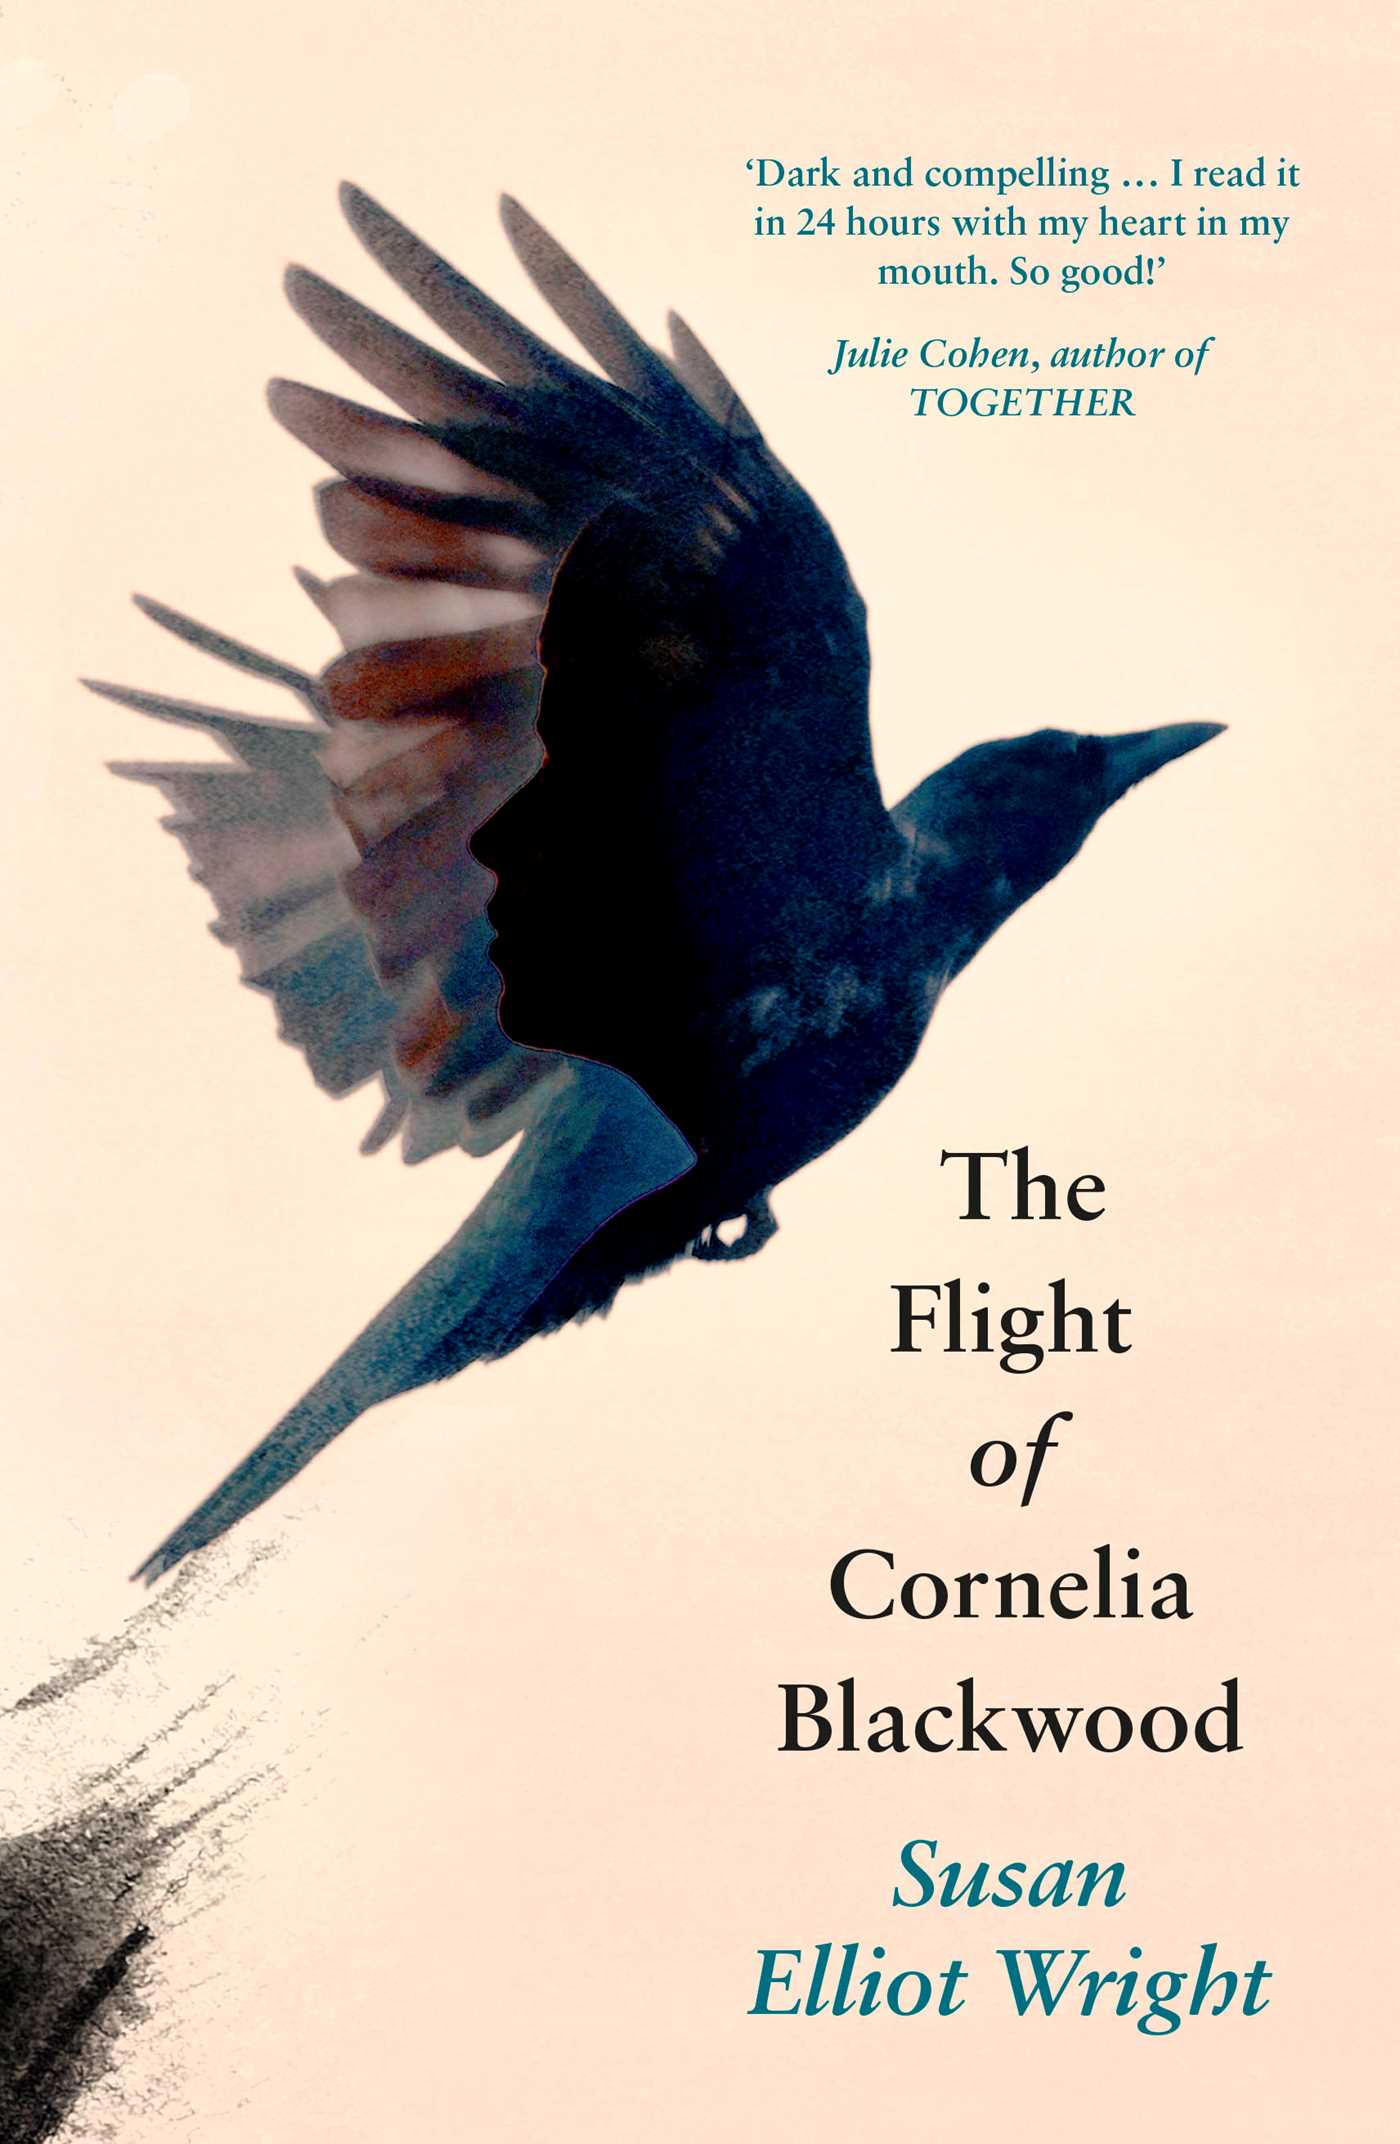 The flight of cornelia blackwood 9781471134548 hr